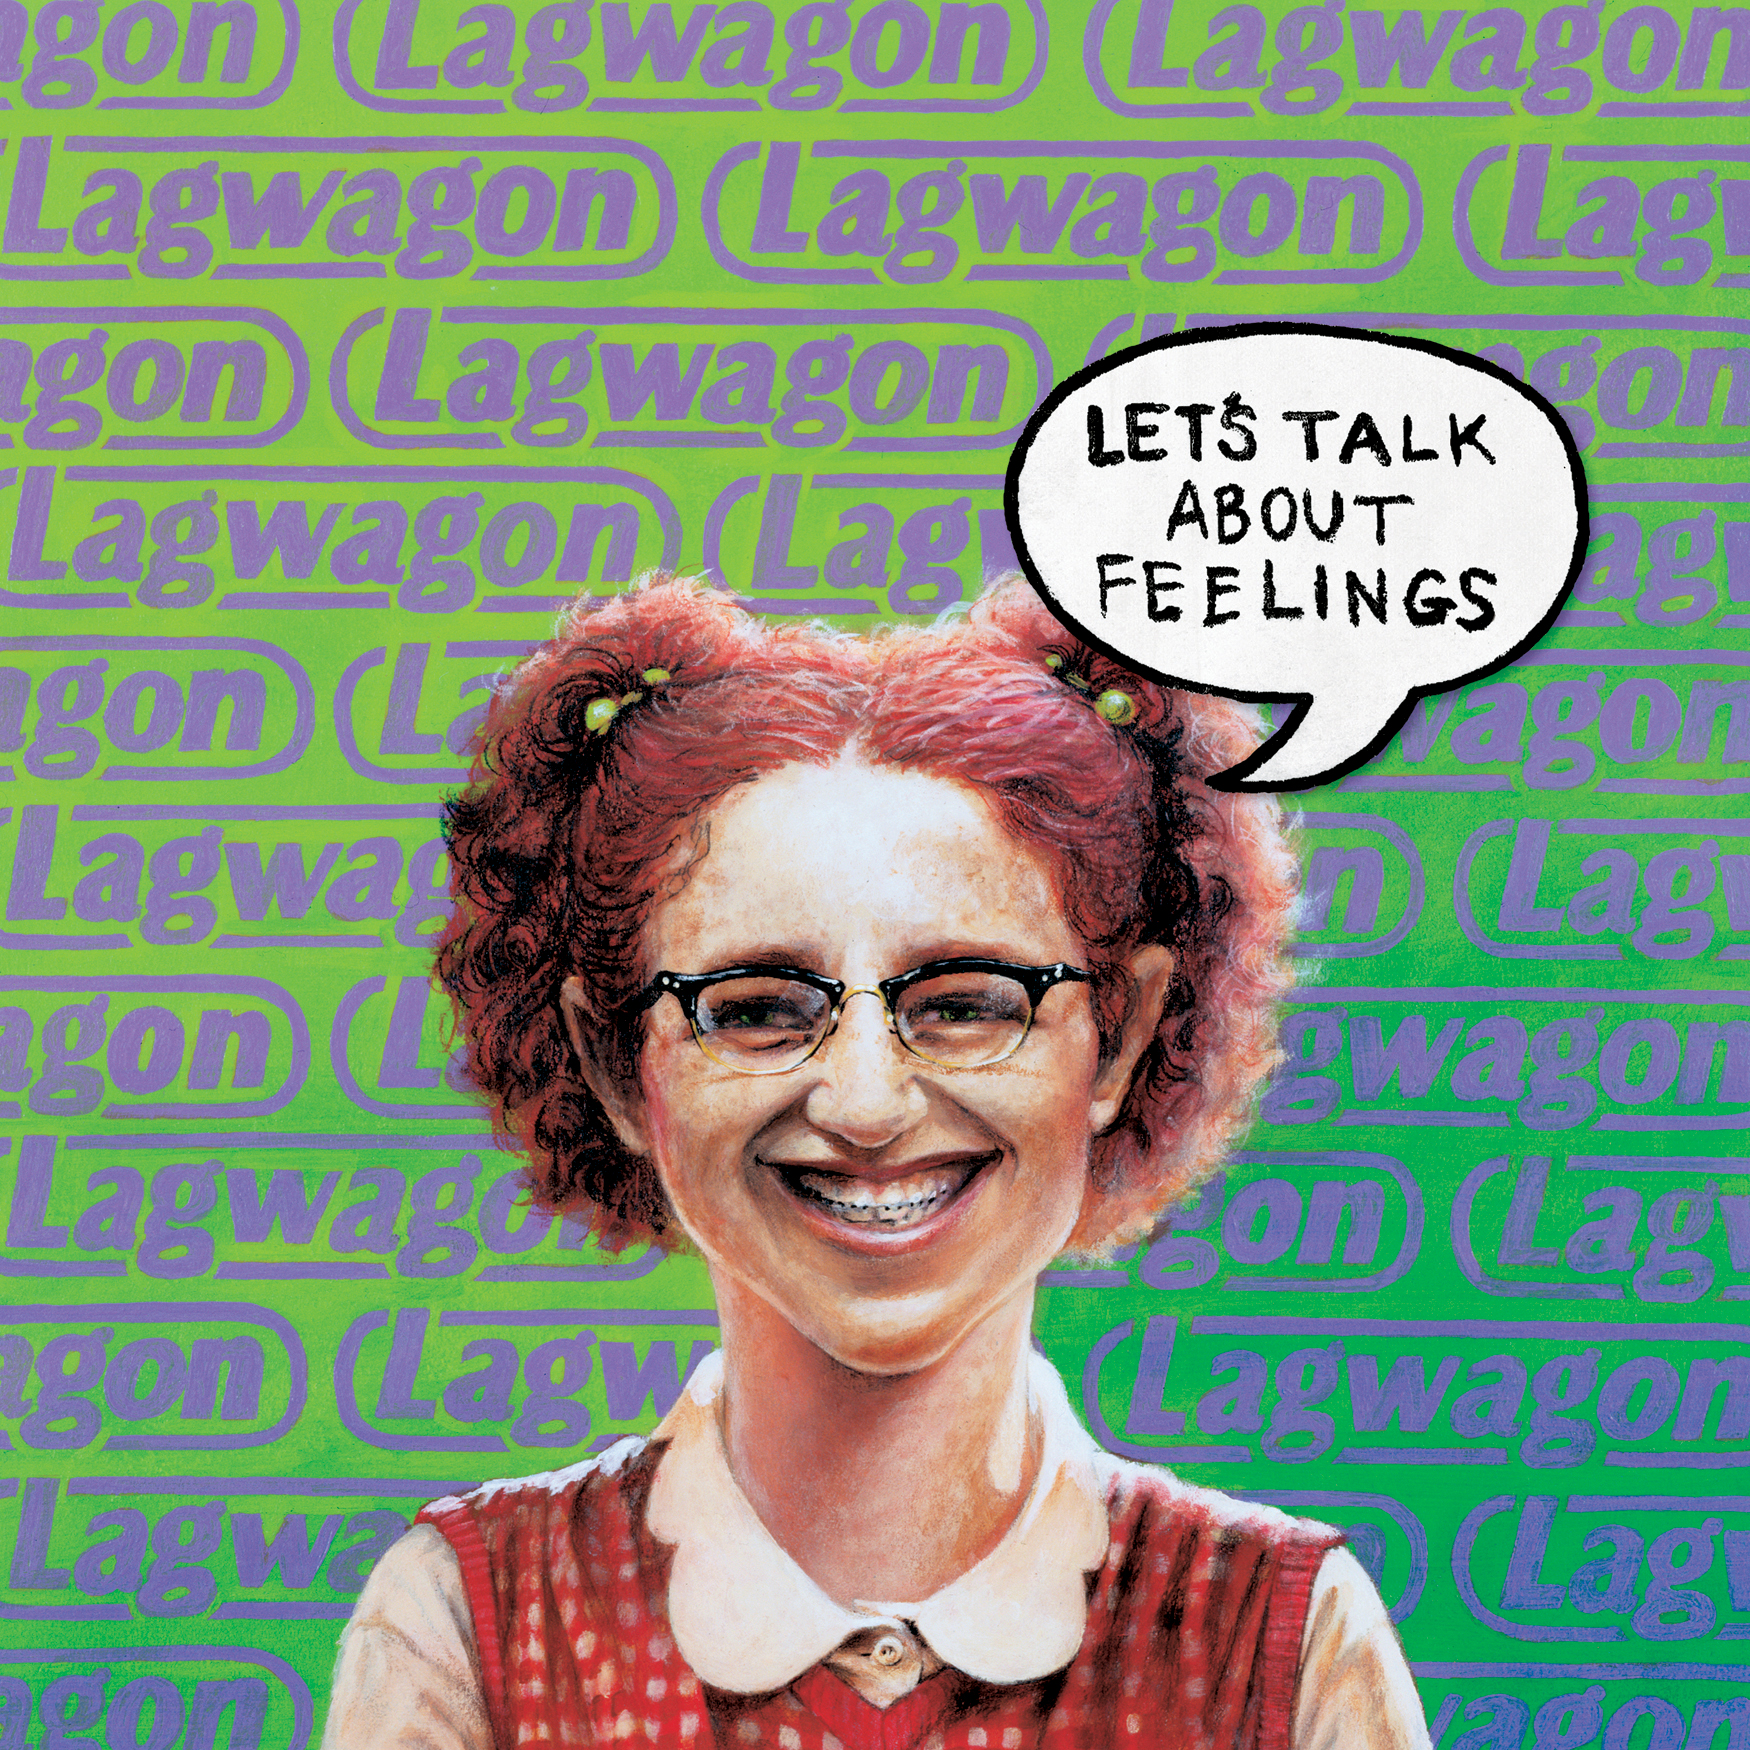 Let's_Talk_About_Feelings 1750x1750 RGB.jpg